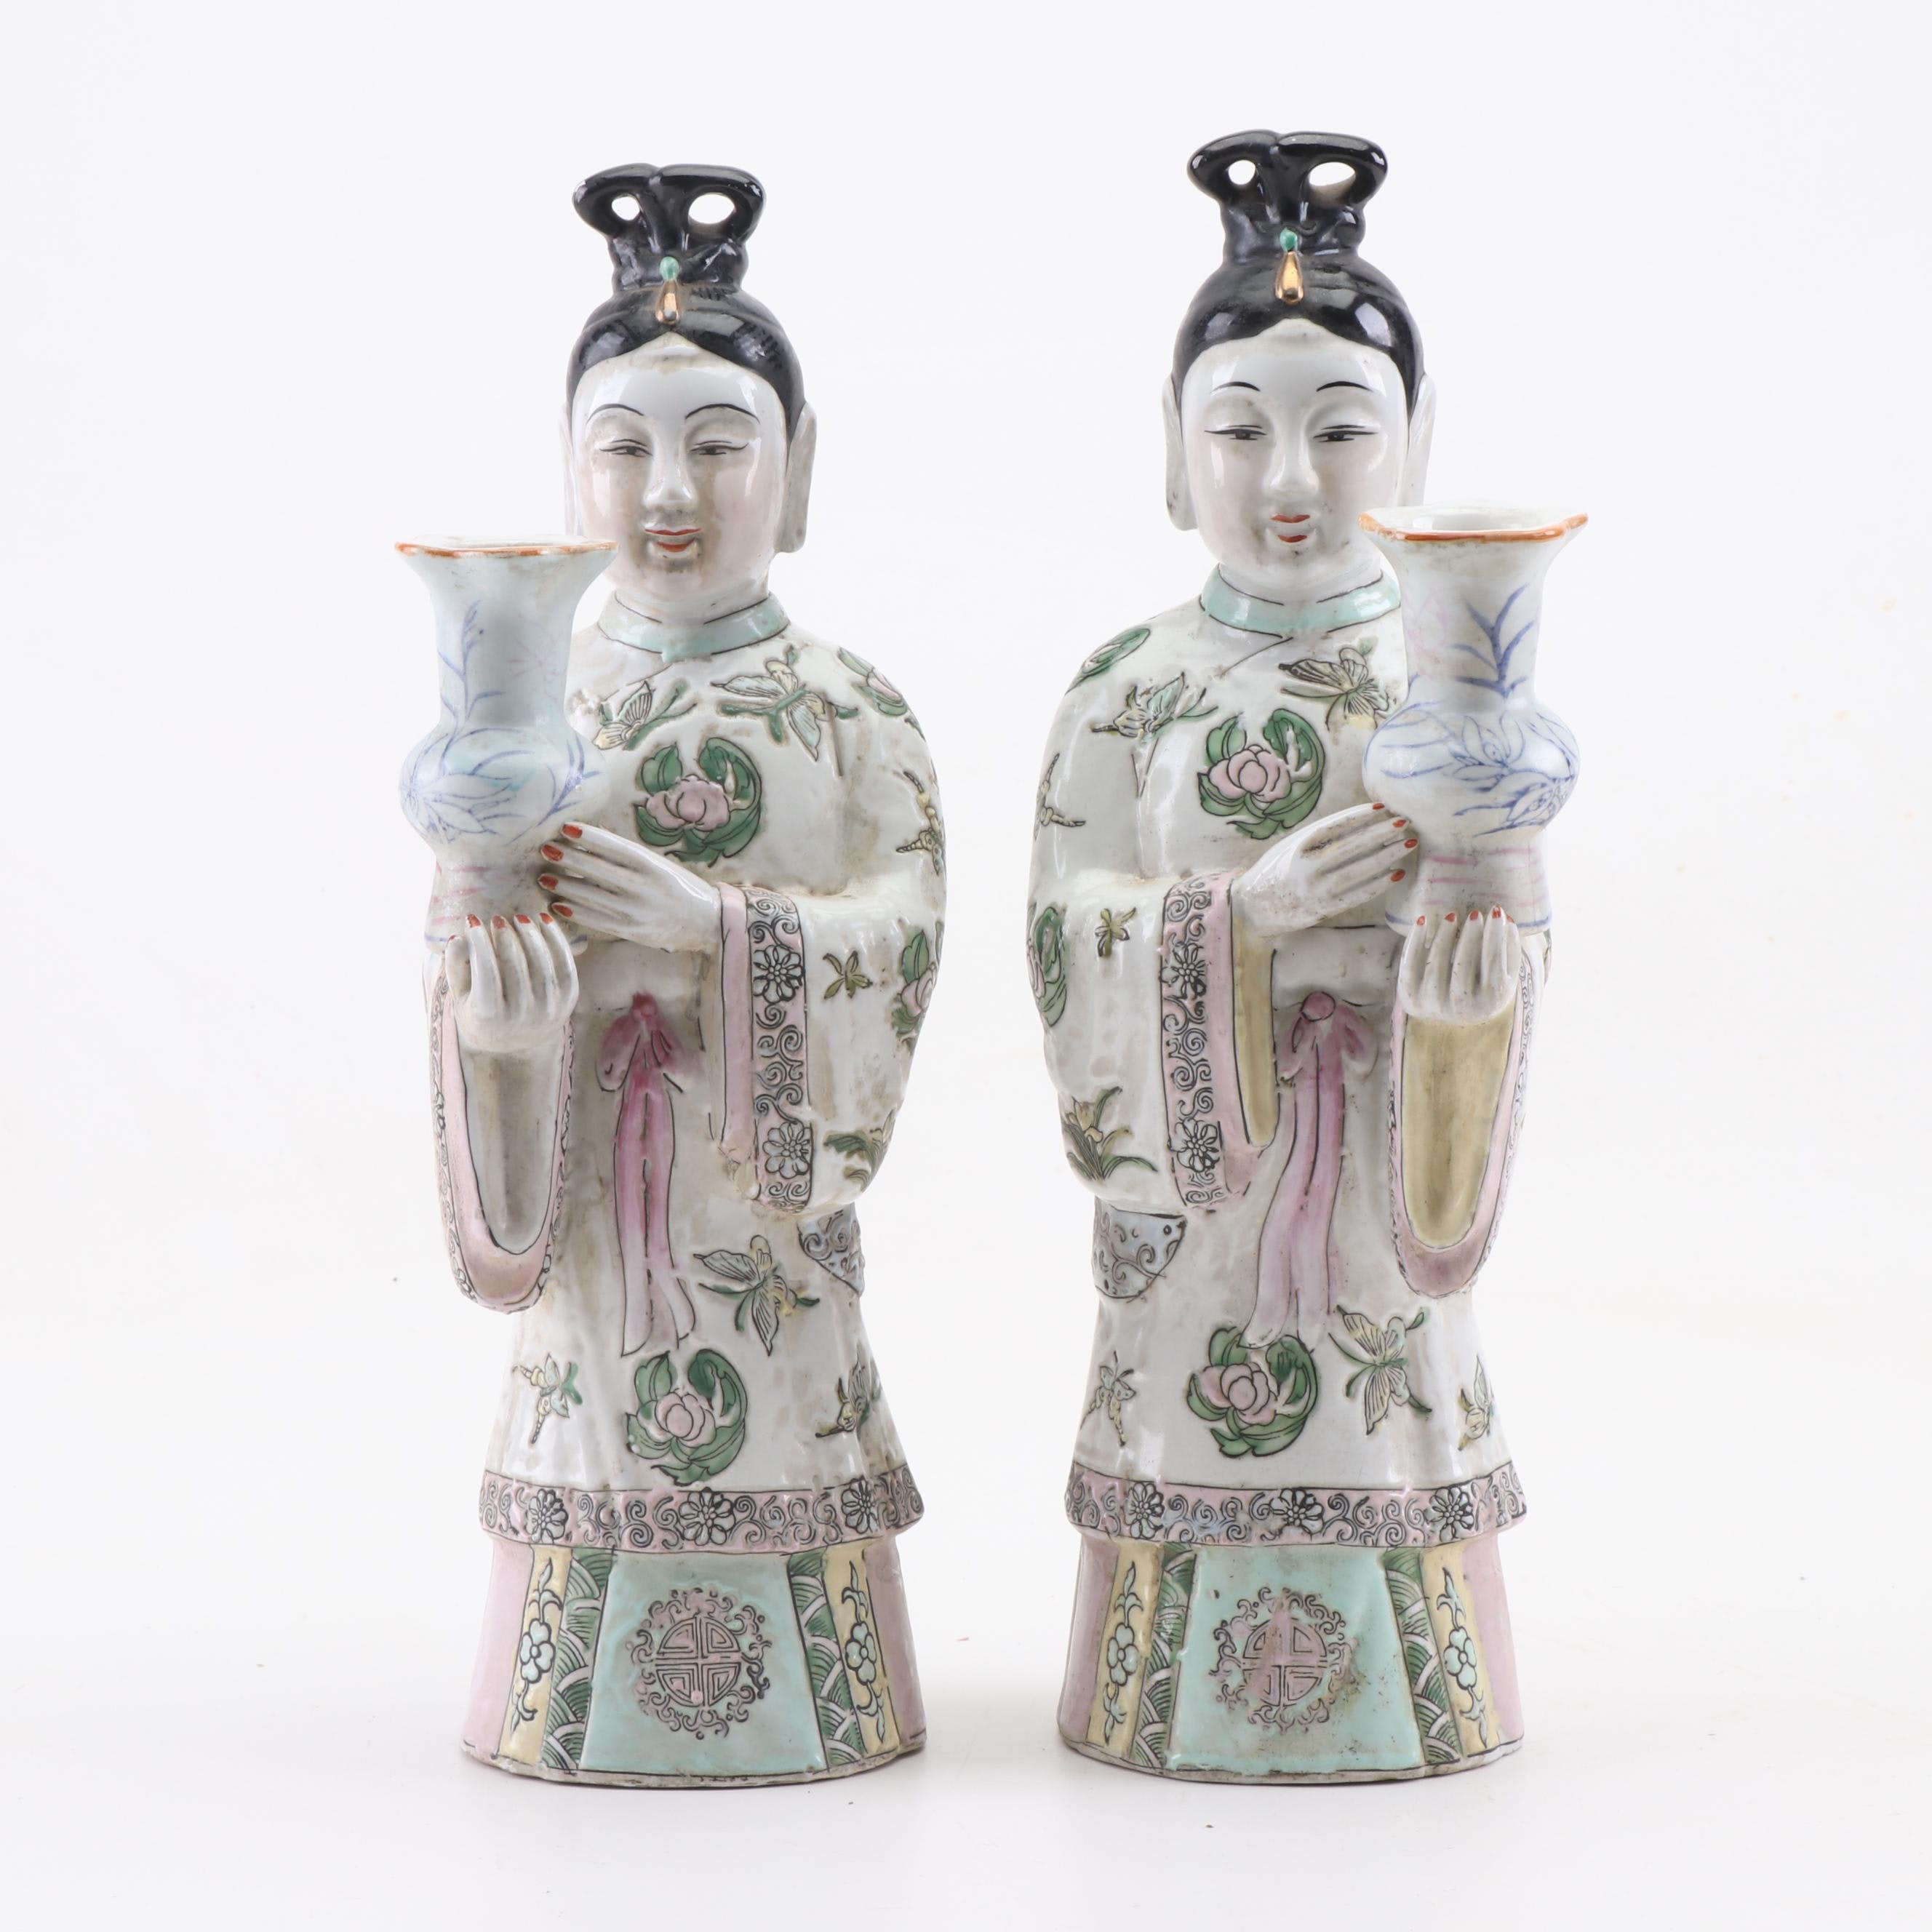 Chinese Figural Ceramic Candle Holders